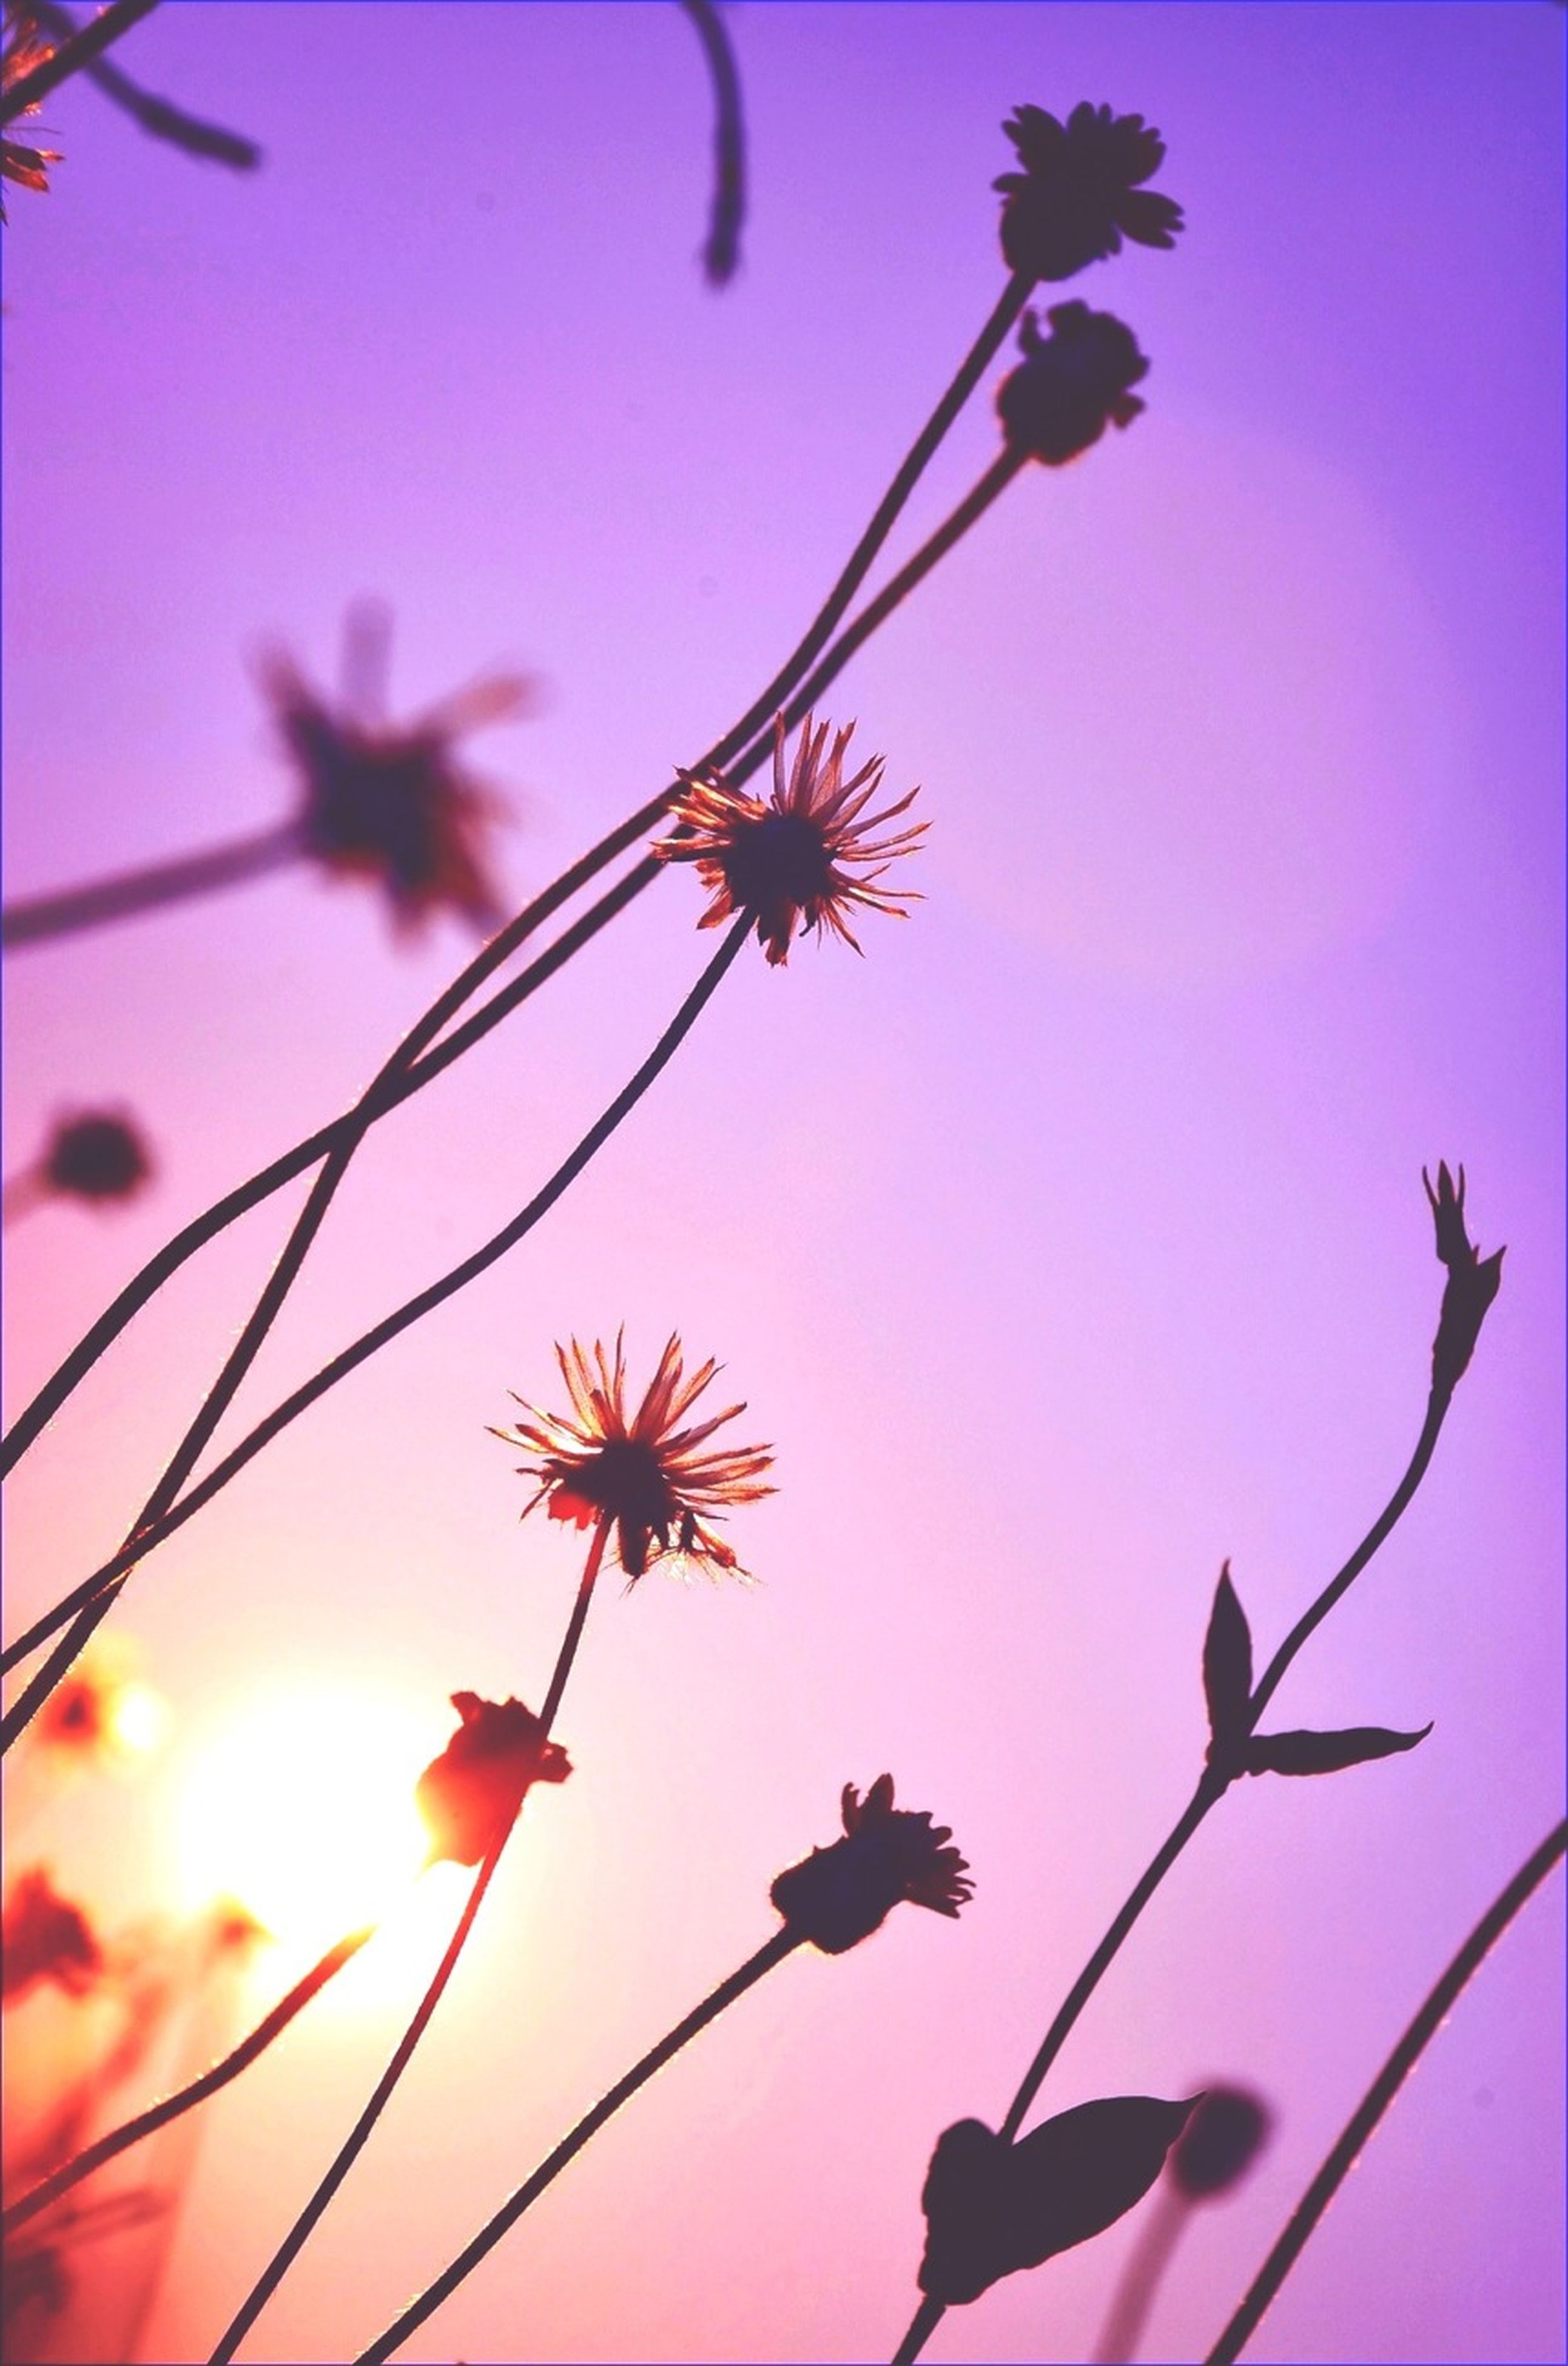 flower, growth, low angle view, freshness, nature, beauty in nature, stem, fragility, branch, focus on foreground, plant, twig, sky, close-up, pink color, sunset, outdoors, tree, bud, no people